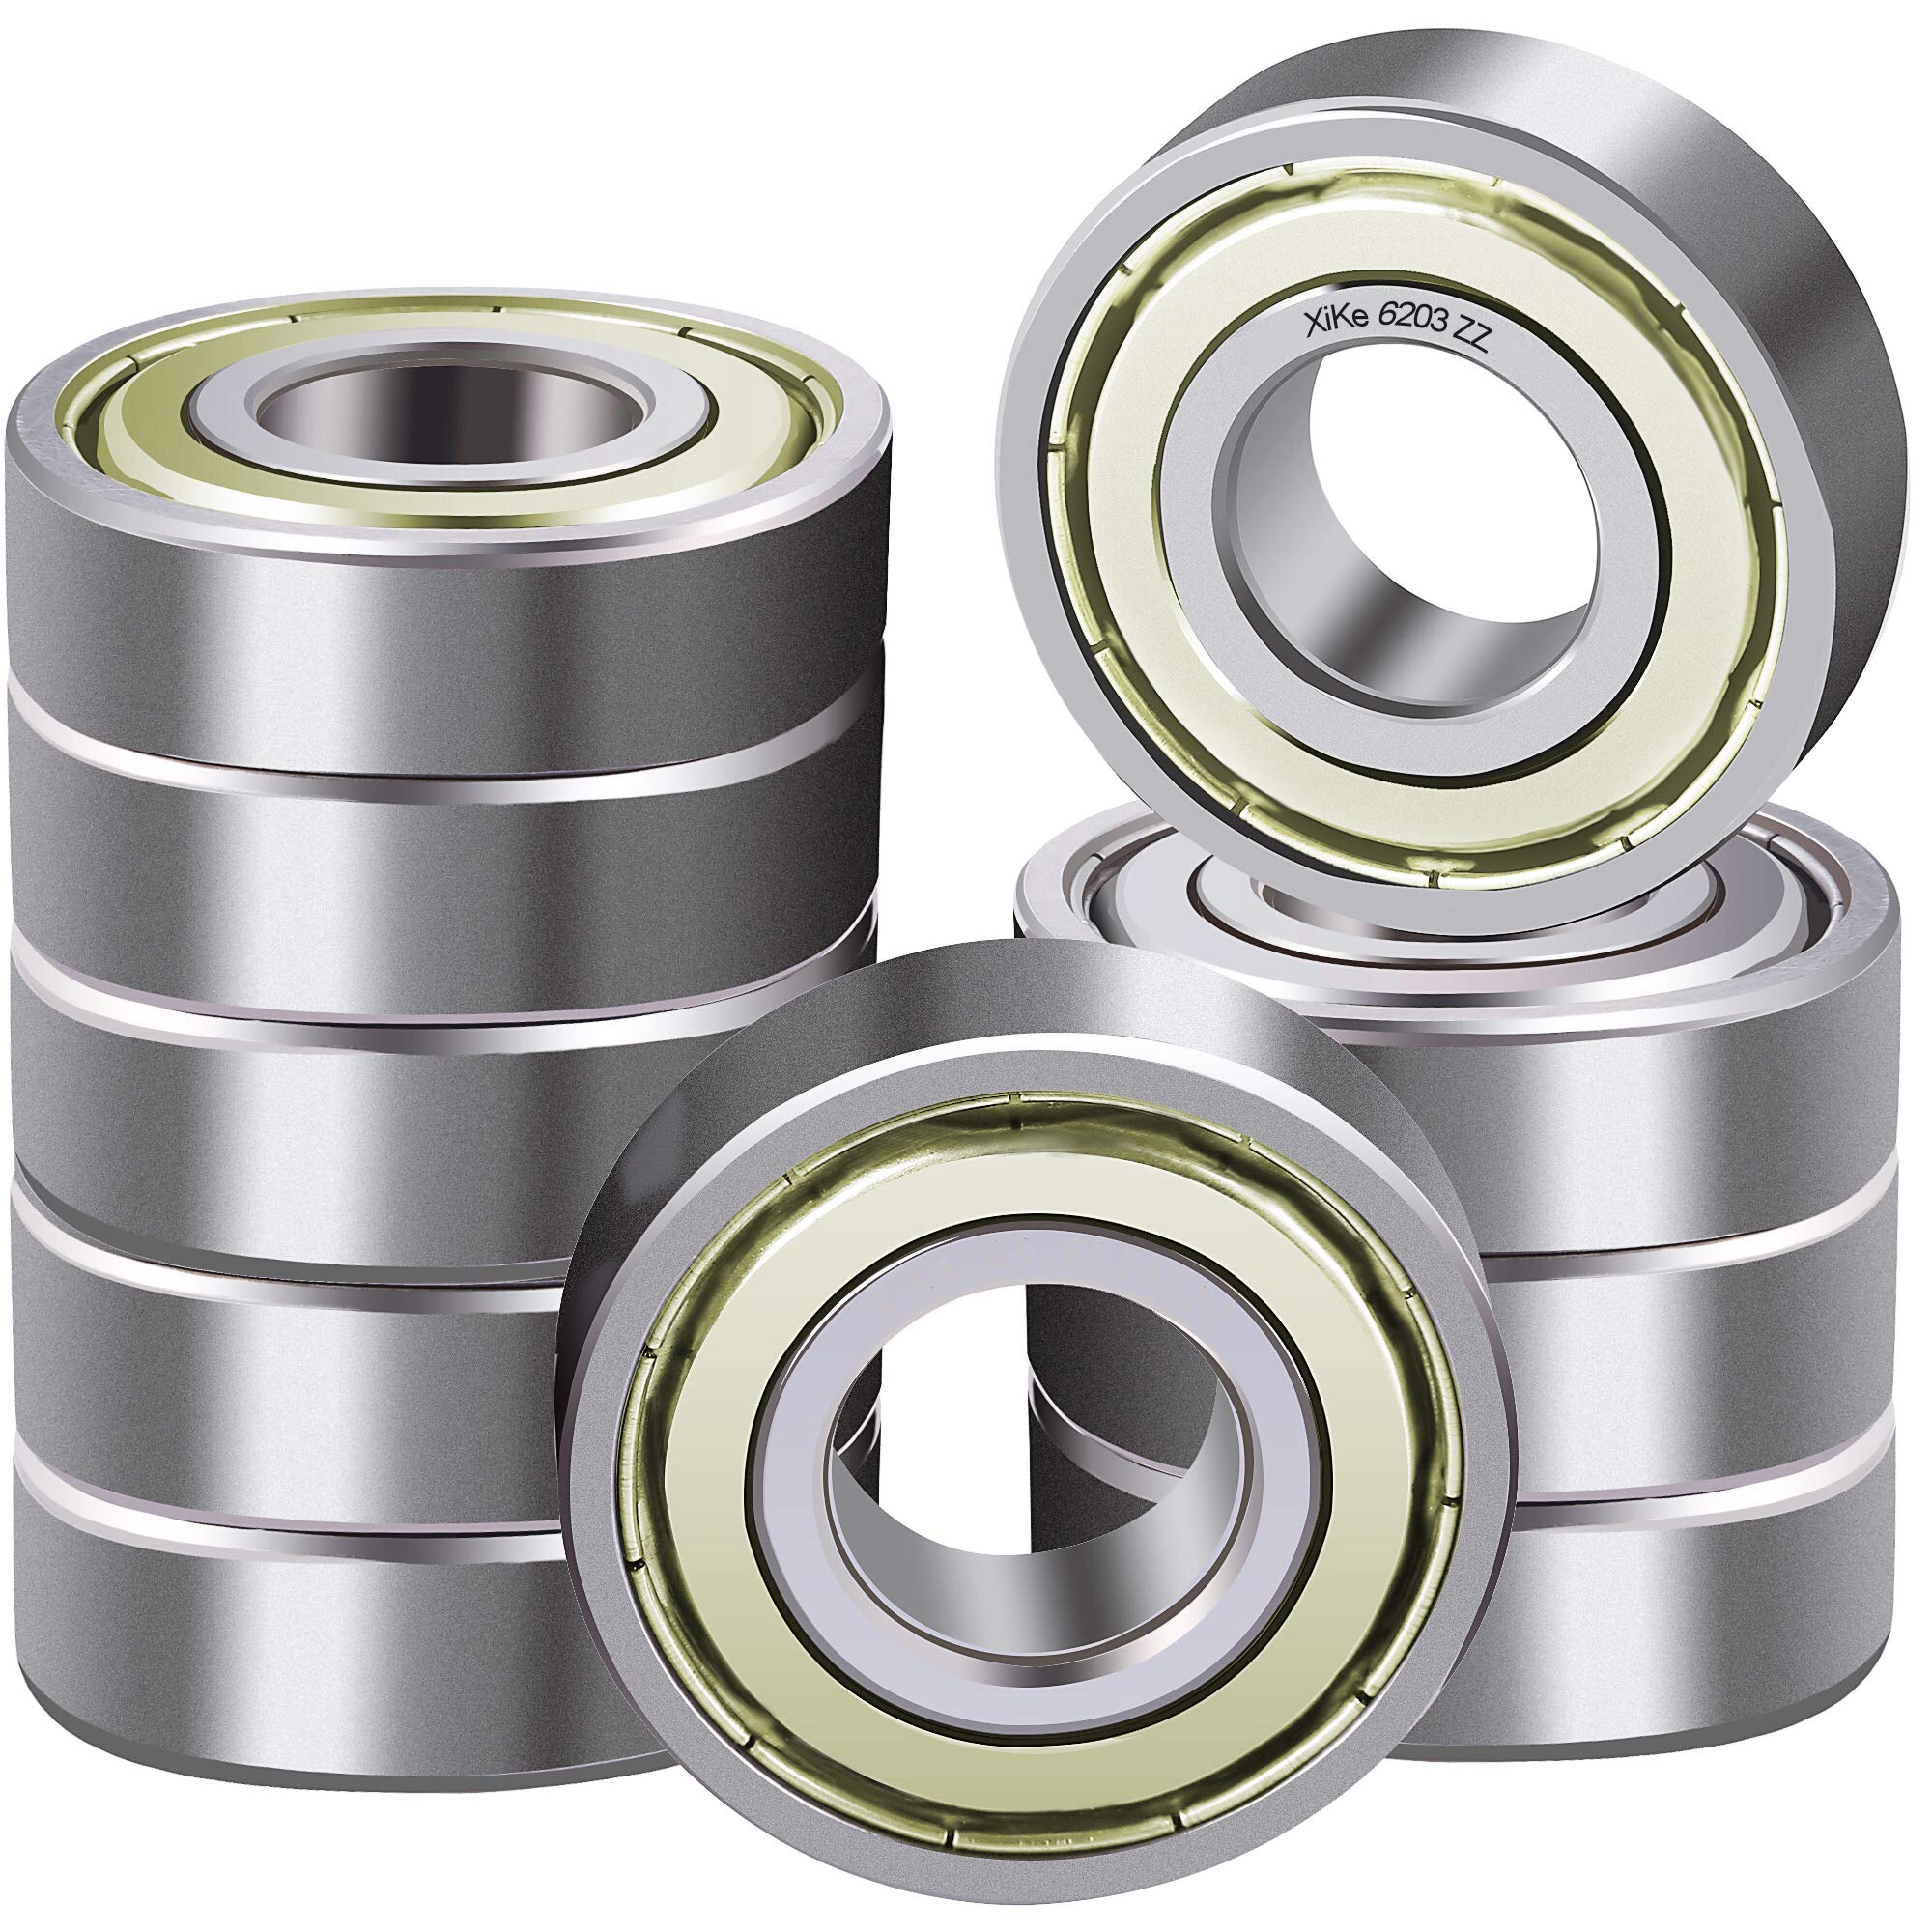 XiKe 10 Pack 6203-2RS Bearings 17x40x12mm Stable Performance and Cost-Effecti...